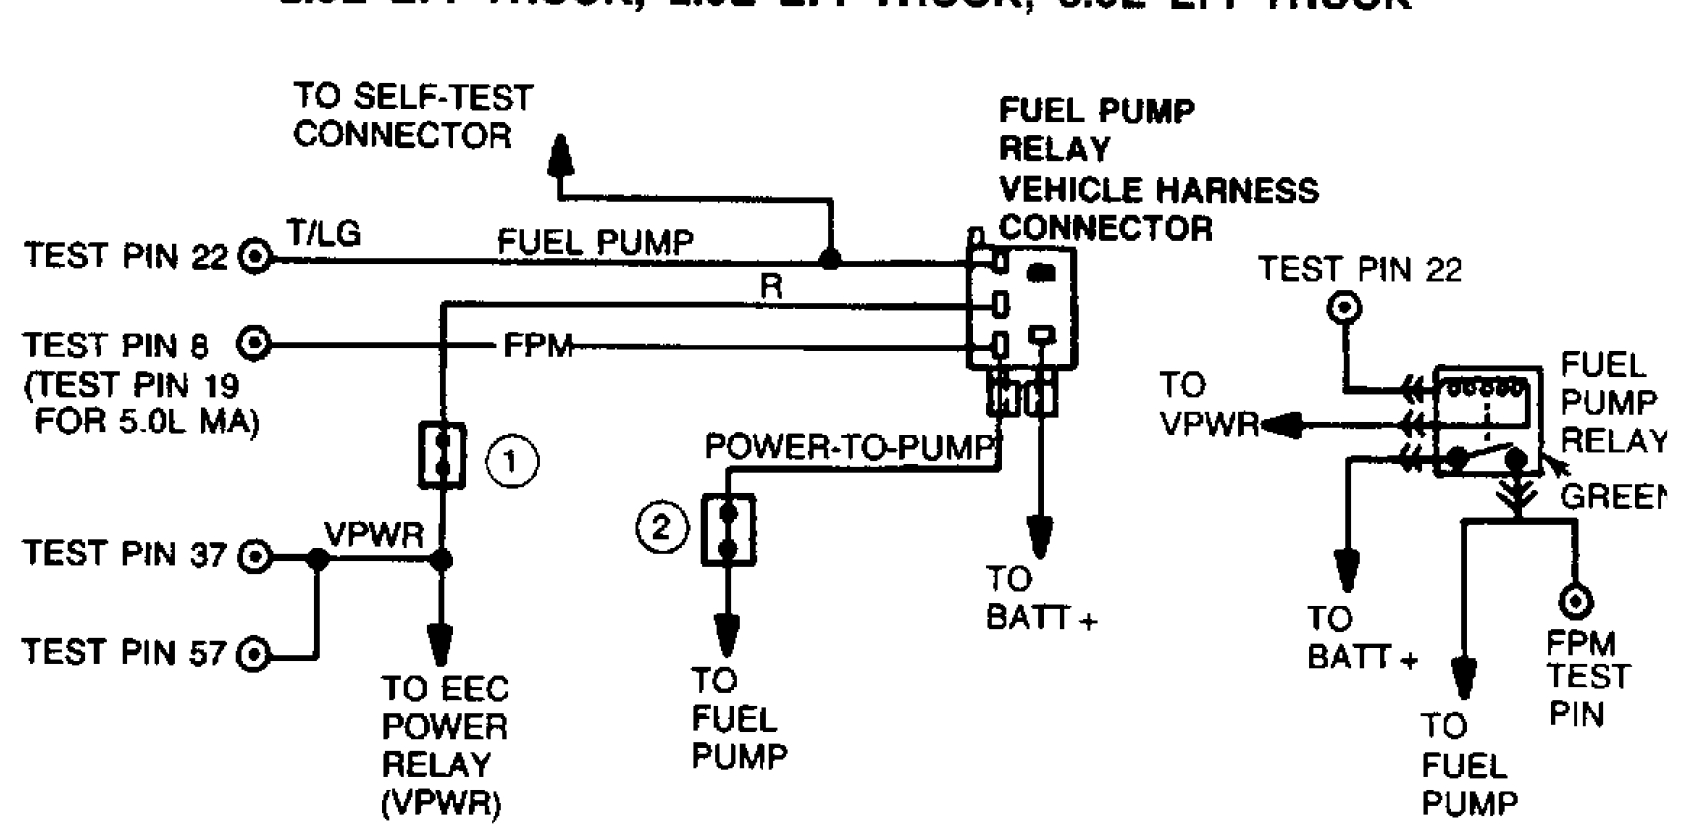 Ford Ranger Fuel System Diagram - Diagram Schematic on